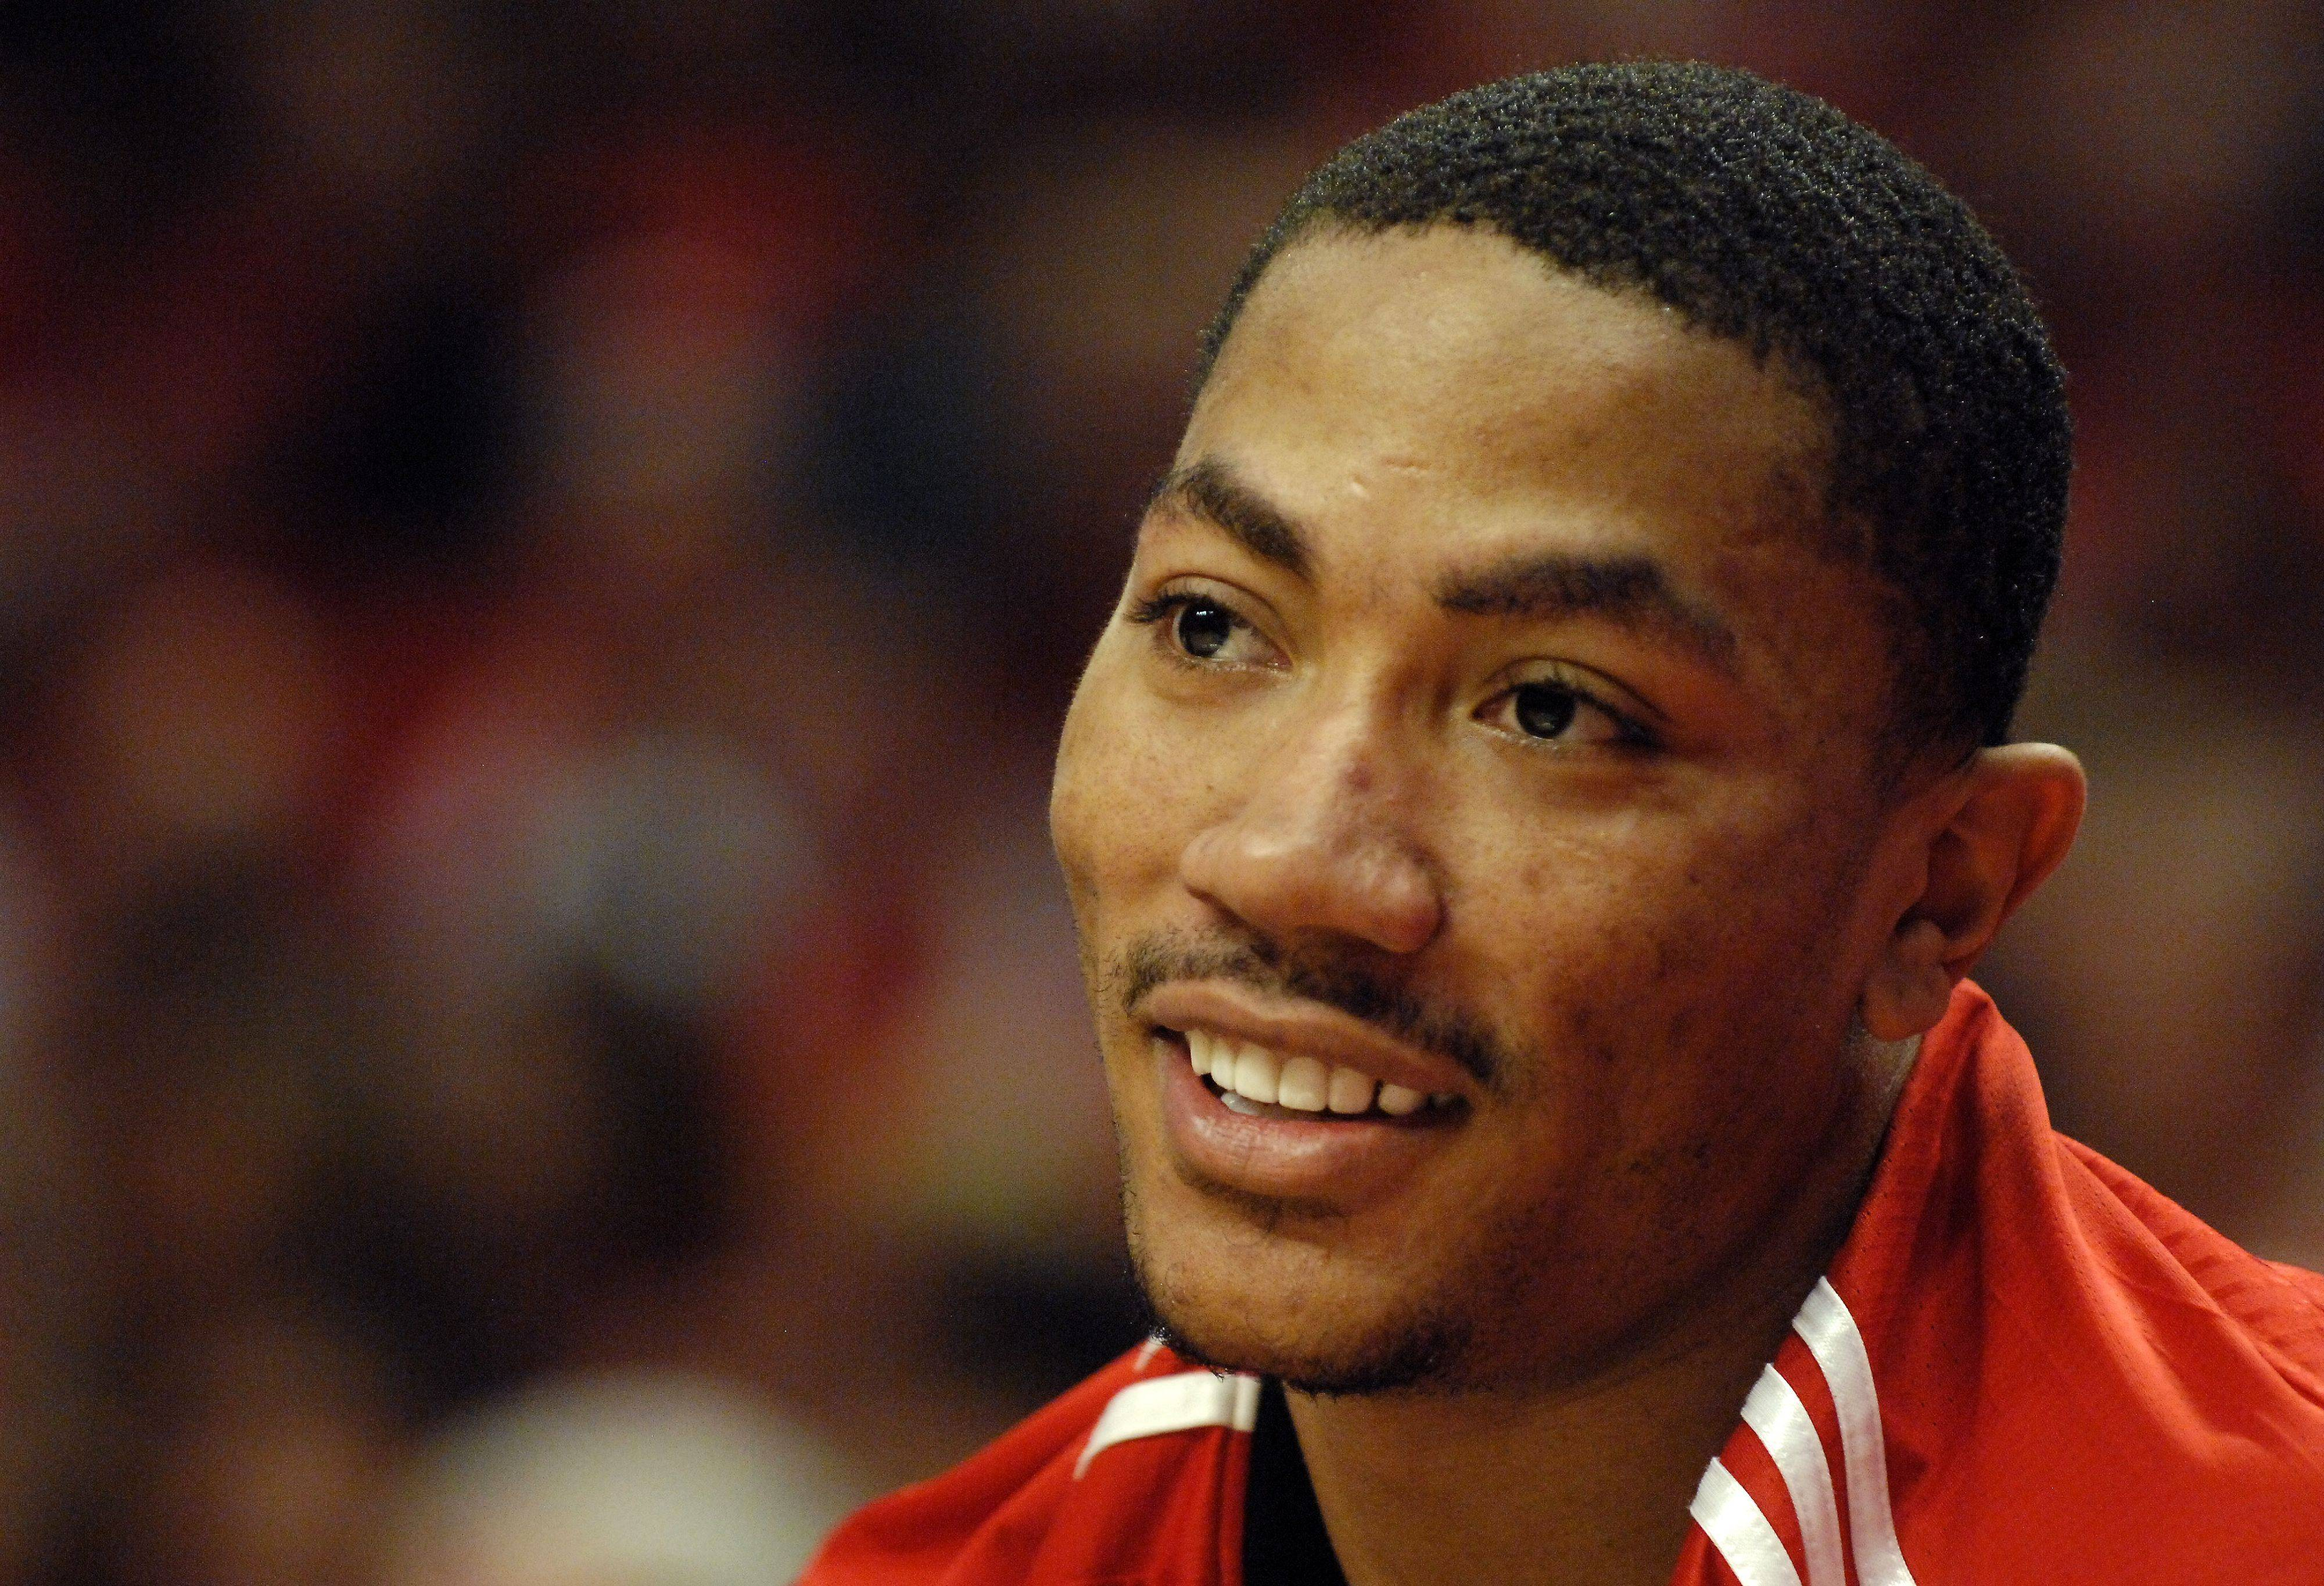 Derrick Rose smiles from the bench during game 5 of the NBA Eastern Conference semifinals at the United Center in Chicago Tuesday.